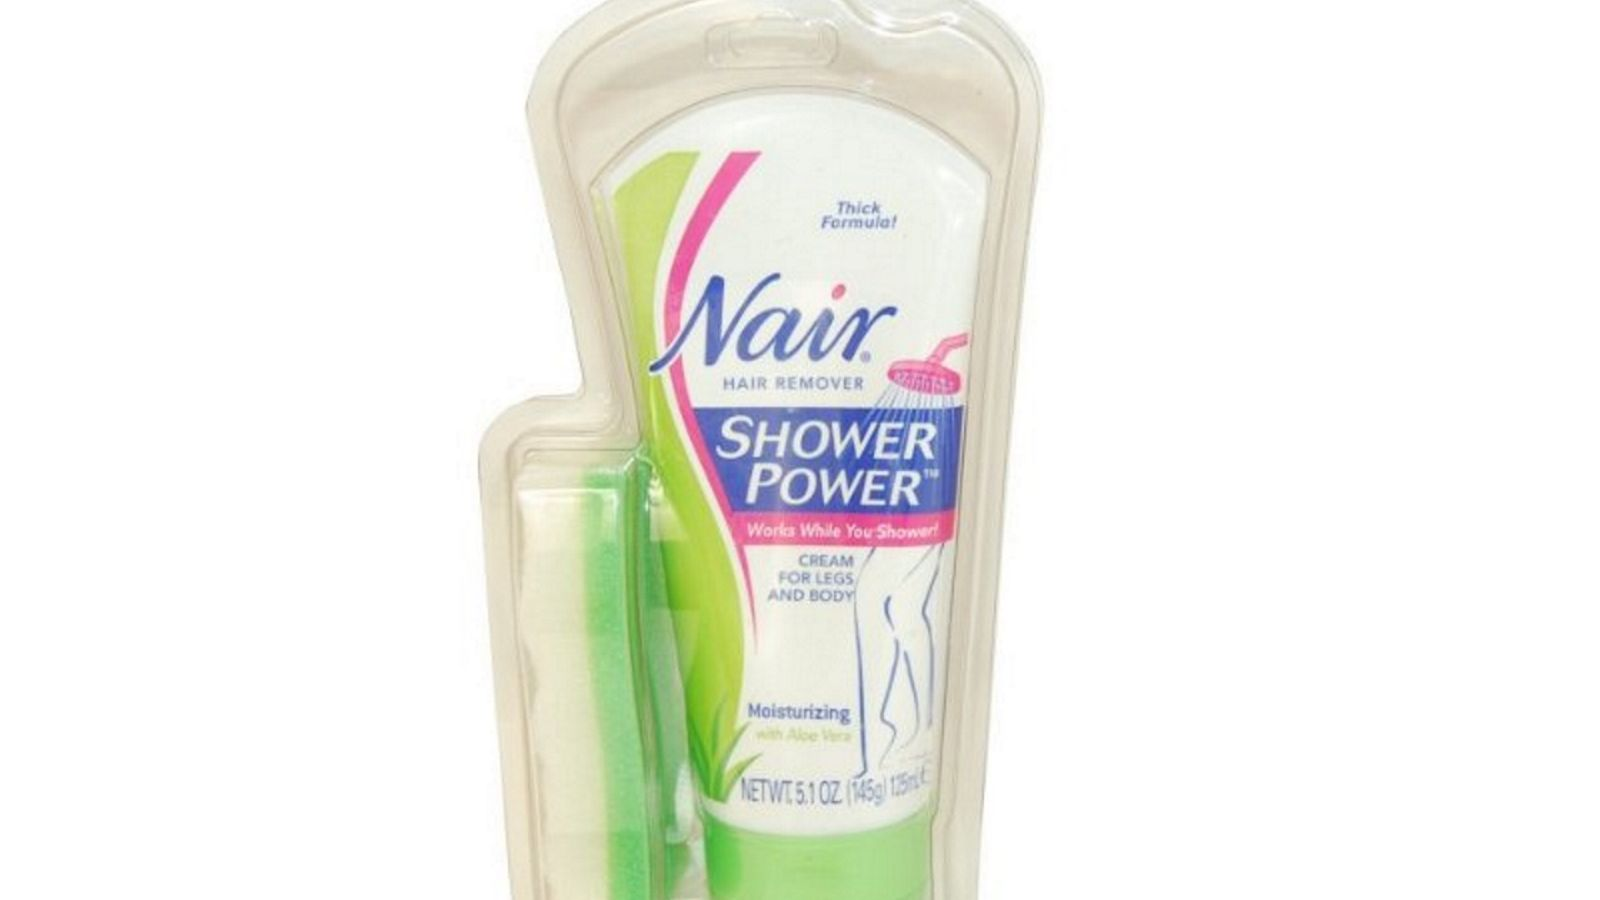 Nair Shower Power Hair Removing Cream Review